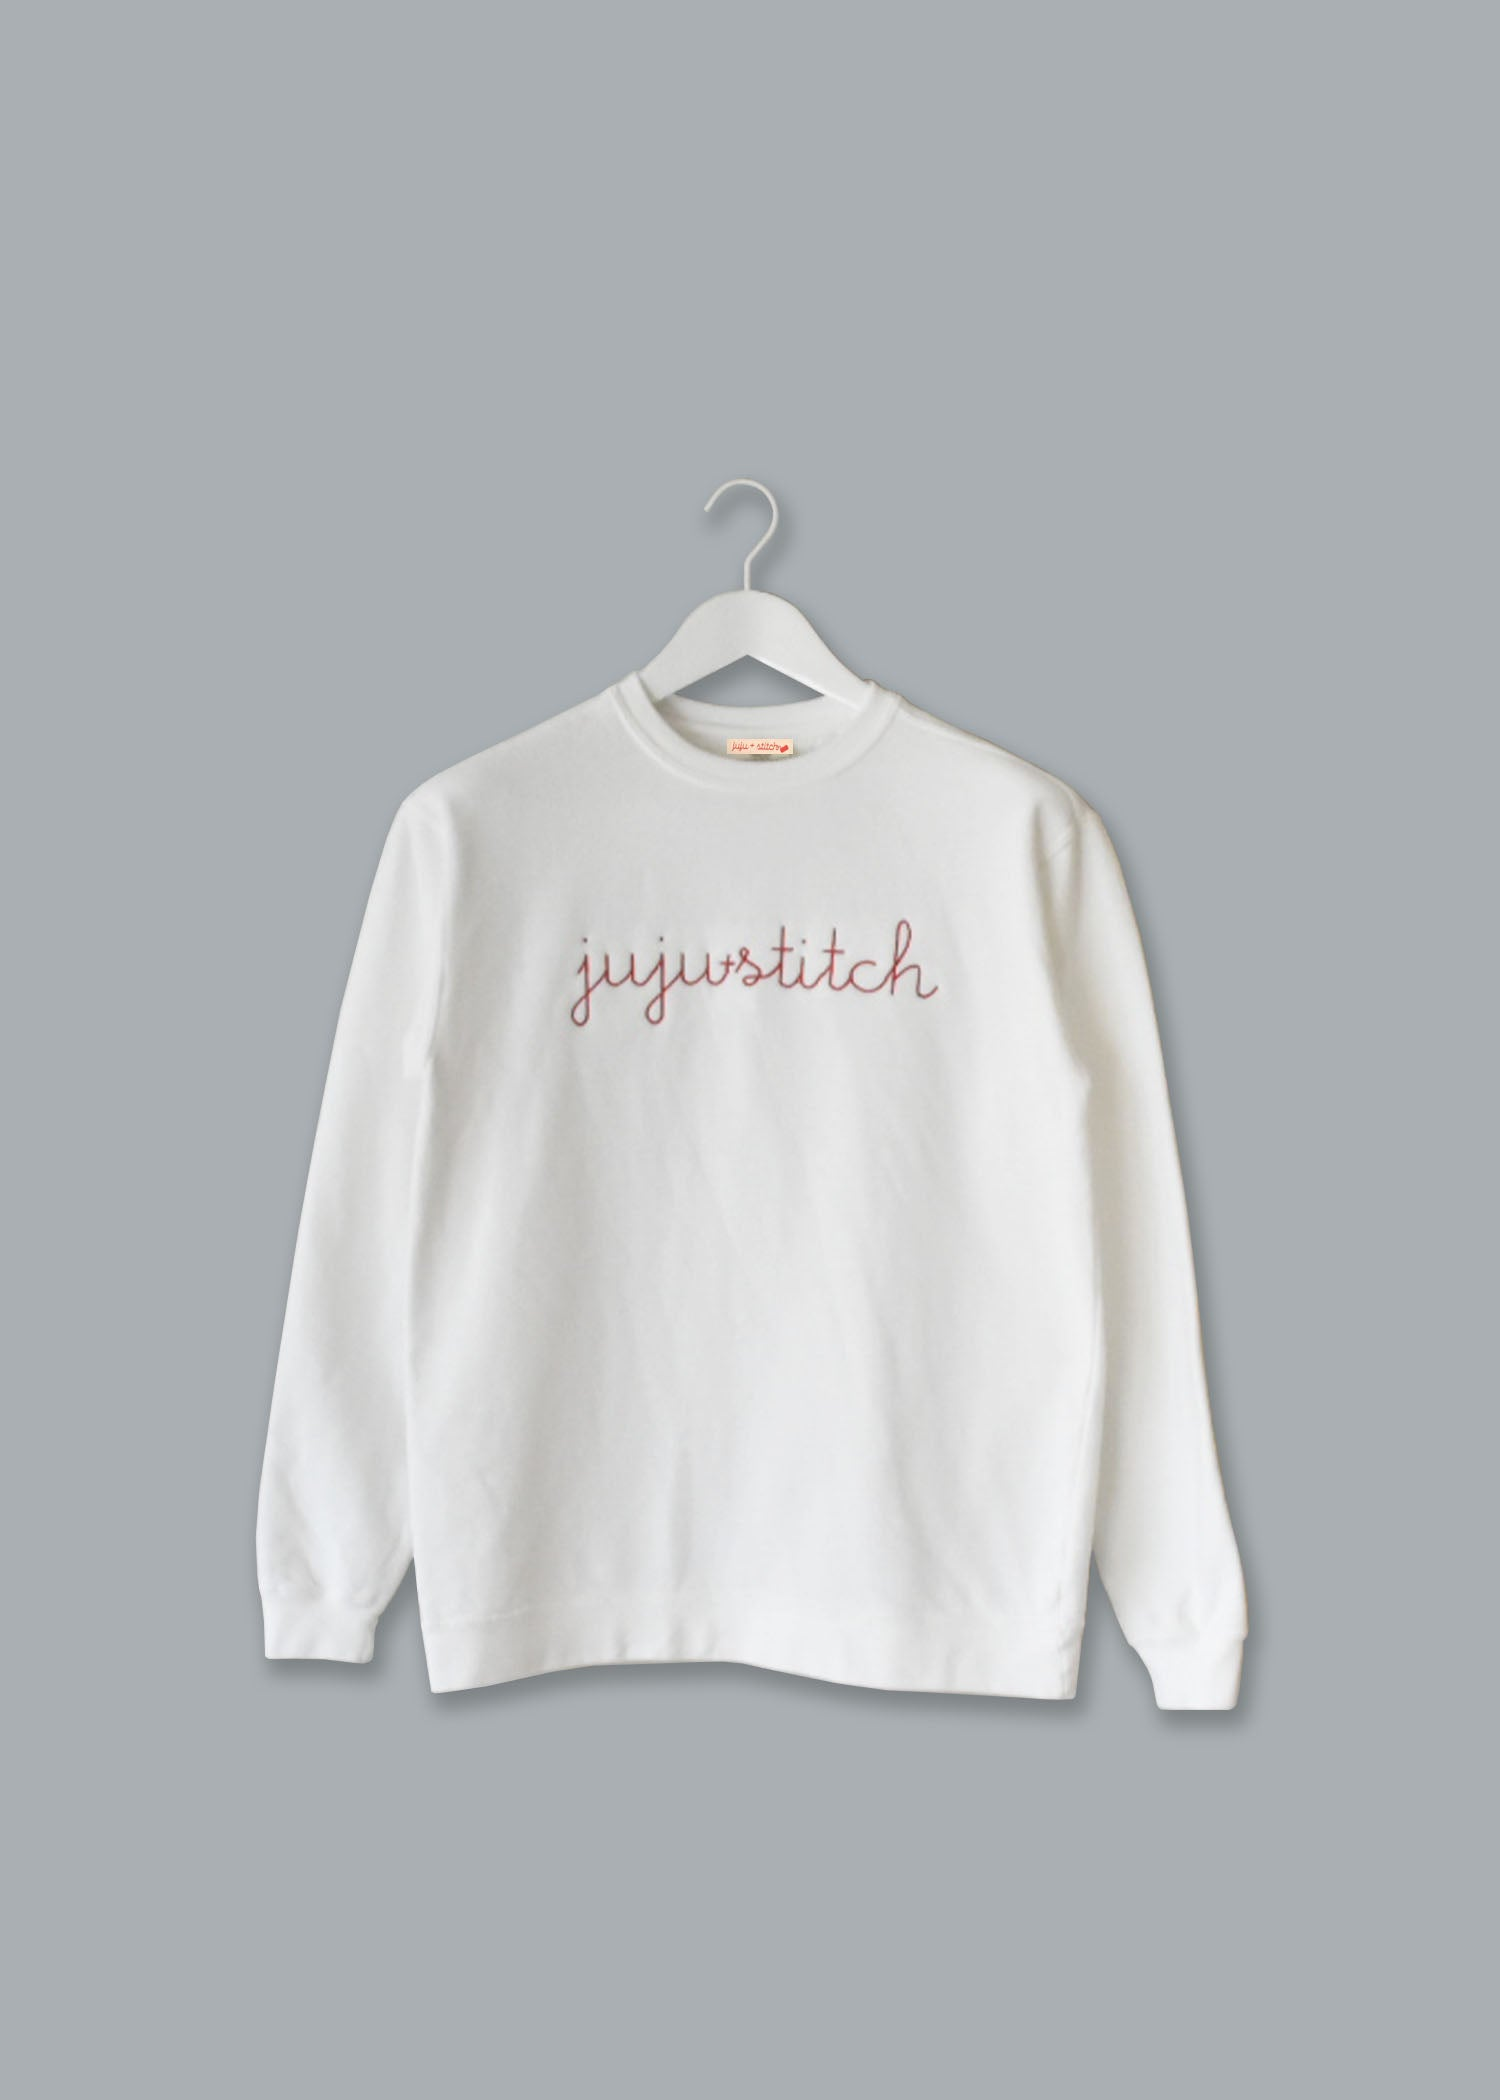 cool kids style embroidered sweatshirt toddler sweatshirt vintage sweatshirt kids Kids Ojai Sweatshirt; custom kids sweatshirt